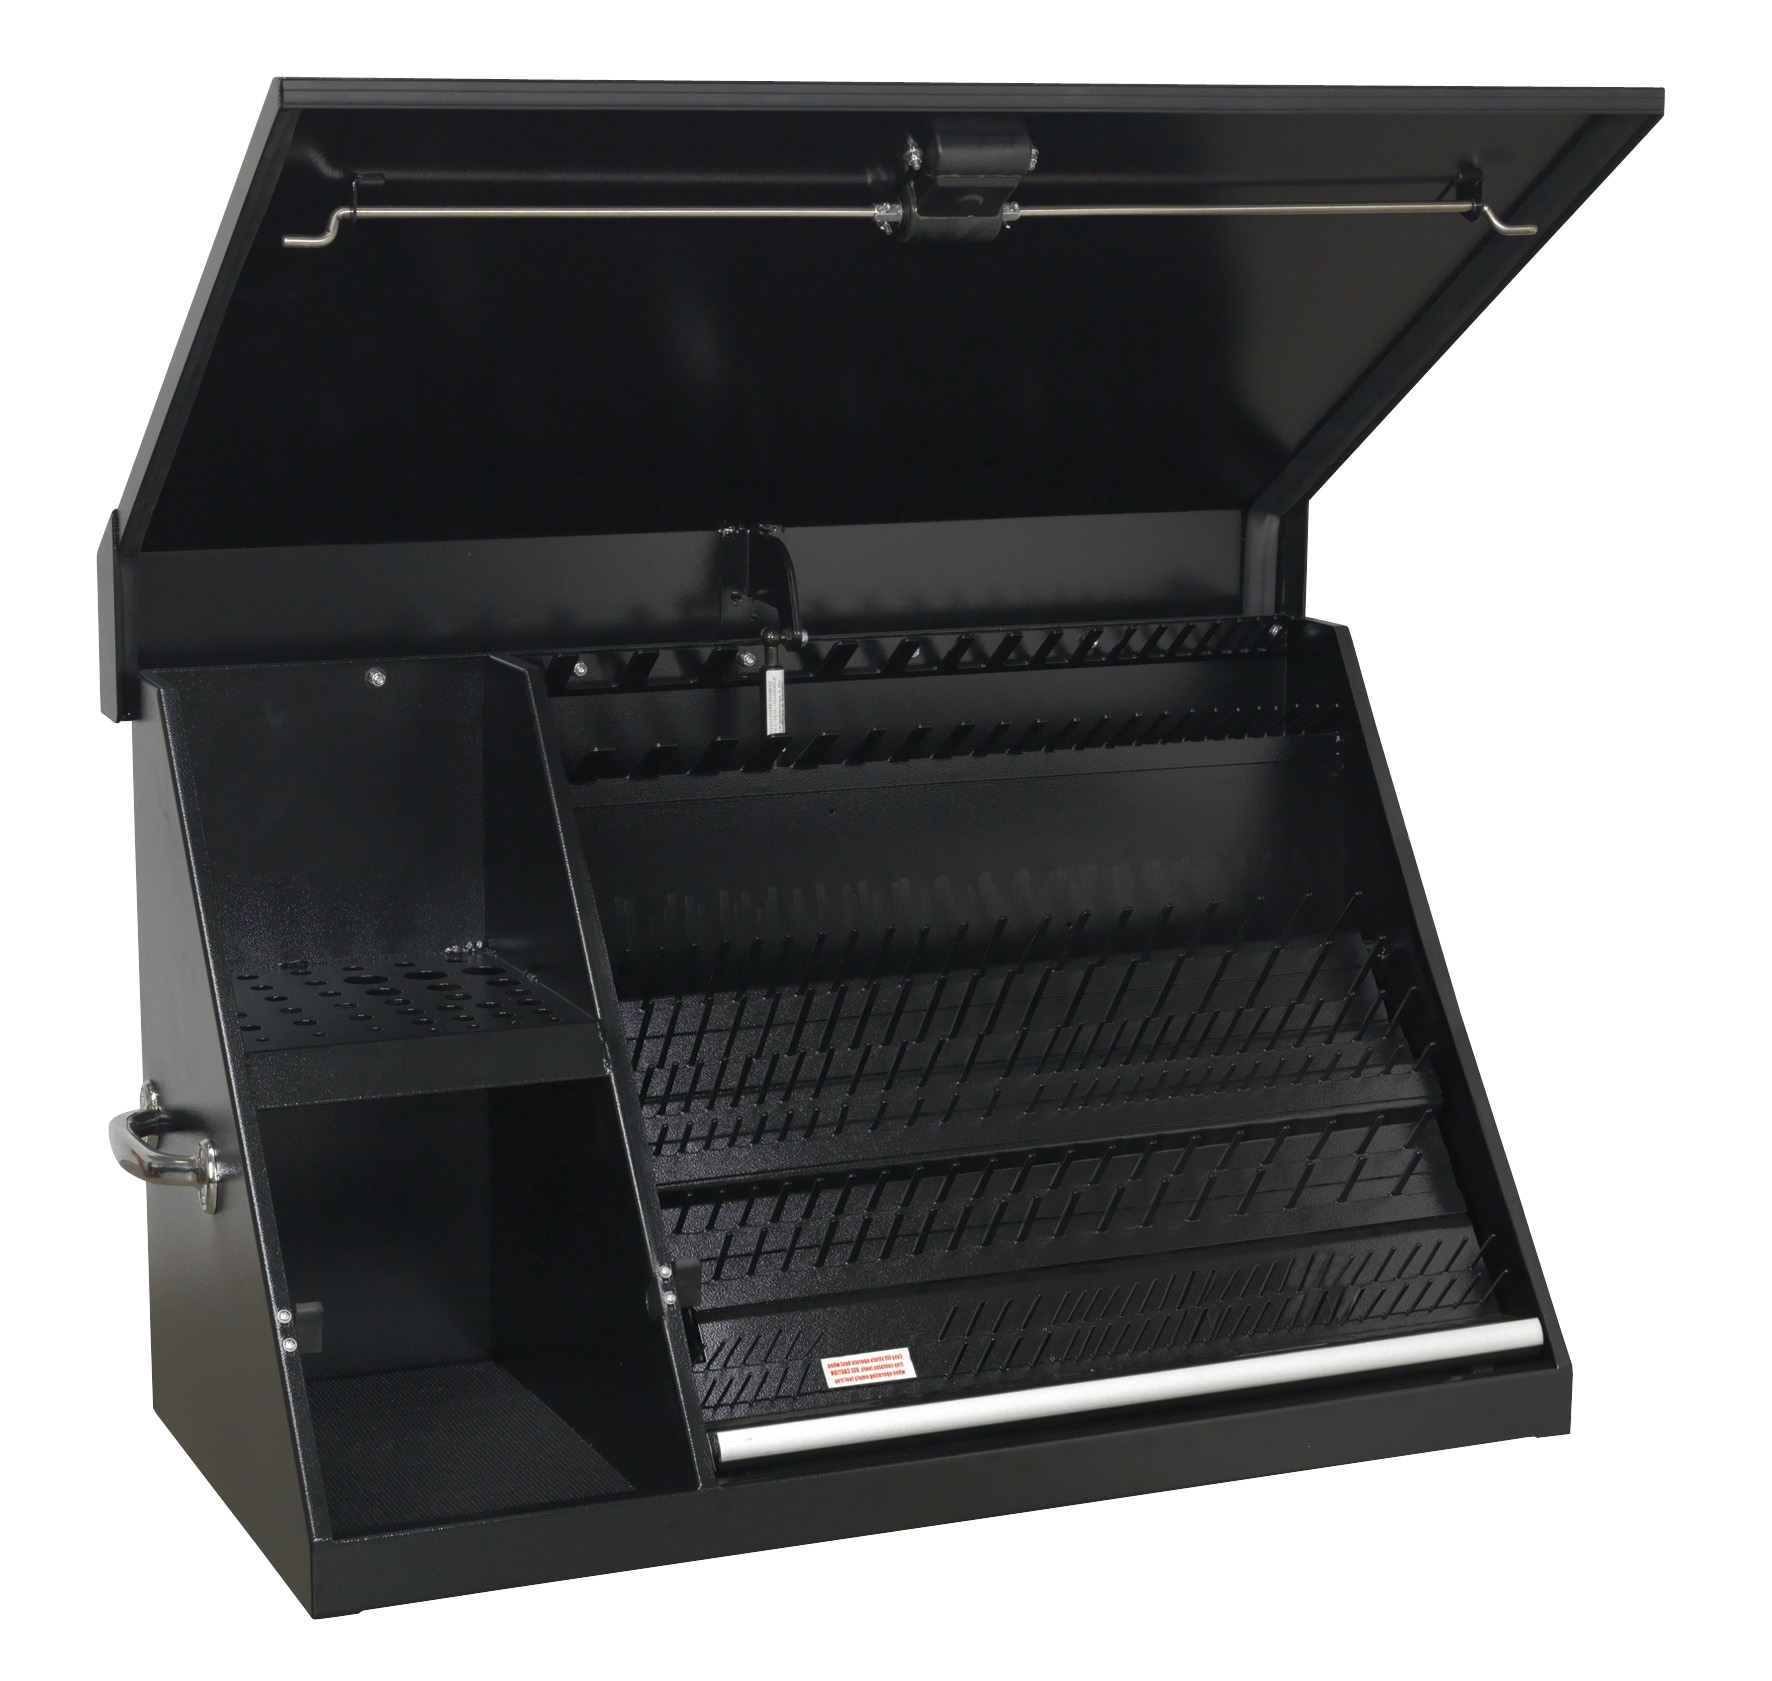 Wedge Topchest 930mm Heavy Duty - Black